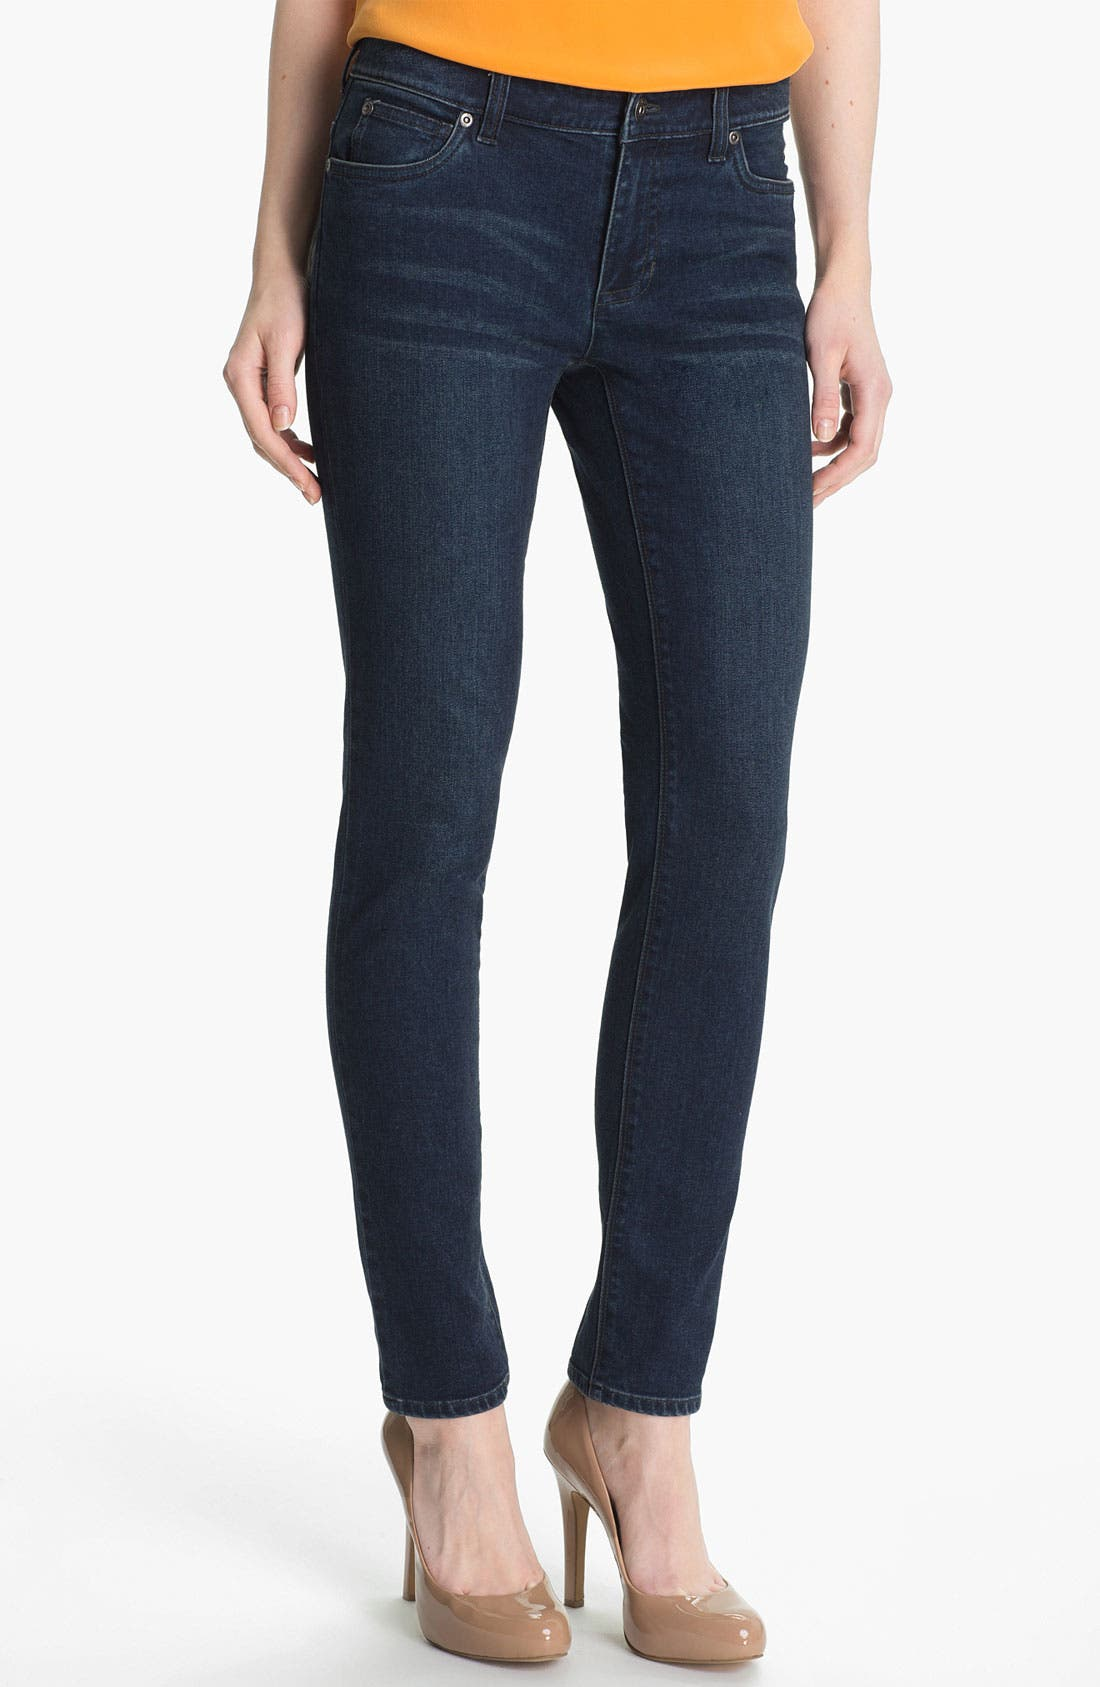 Alternate Image 1 Selected - Two by Vince Camuto Straight Leg Jeans (Dark Rinse)